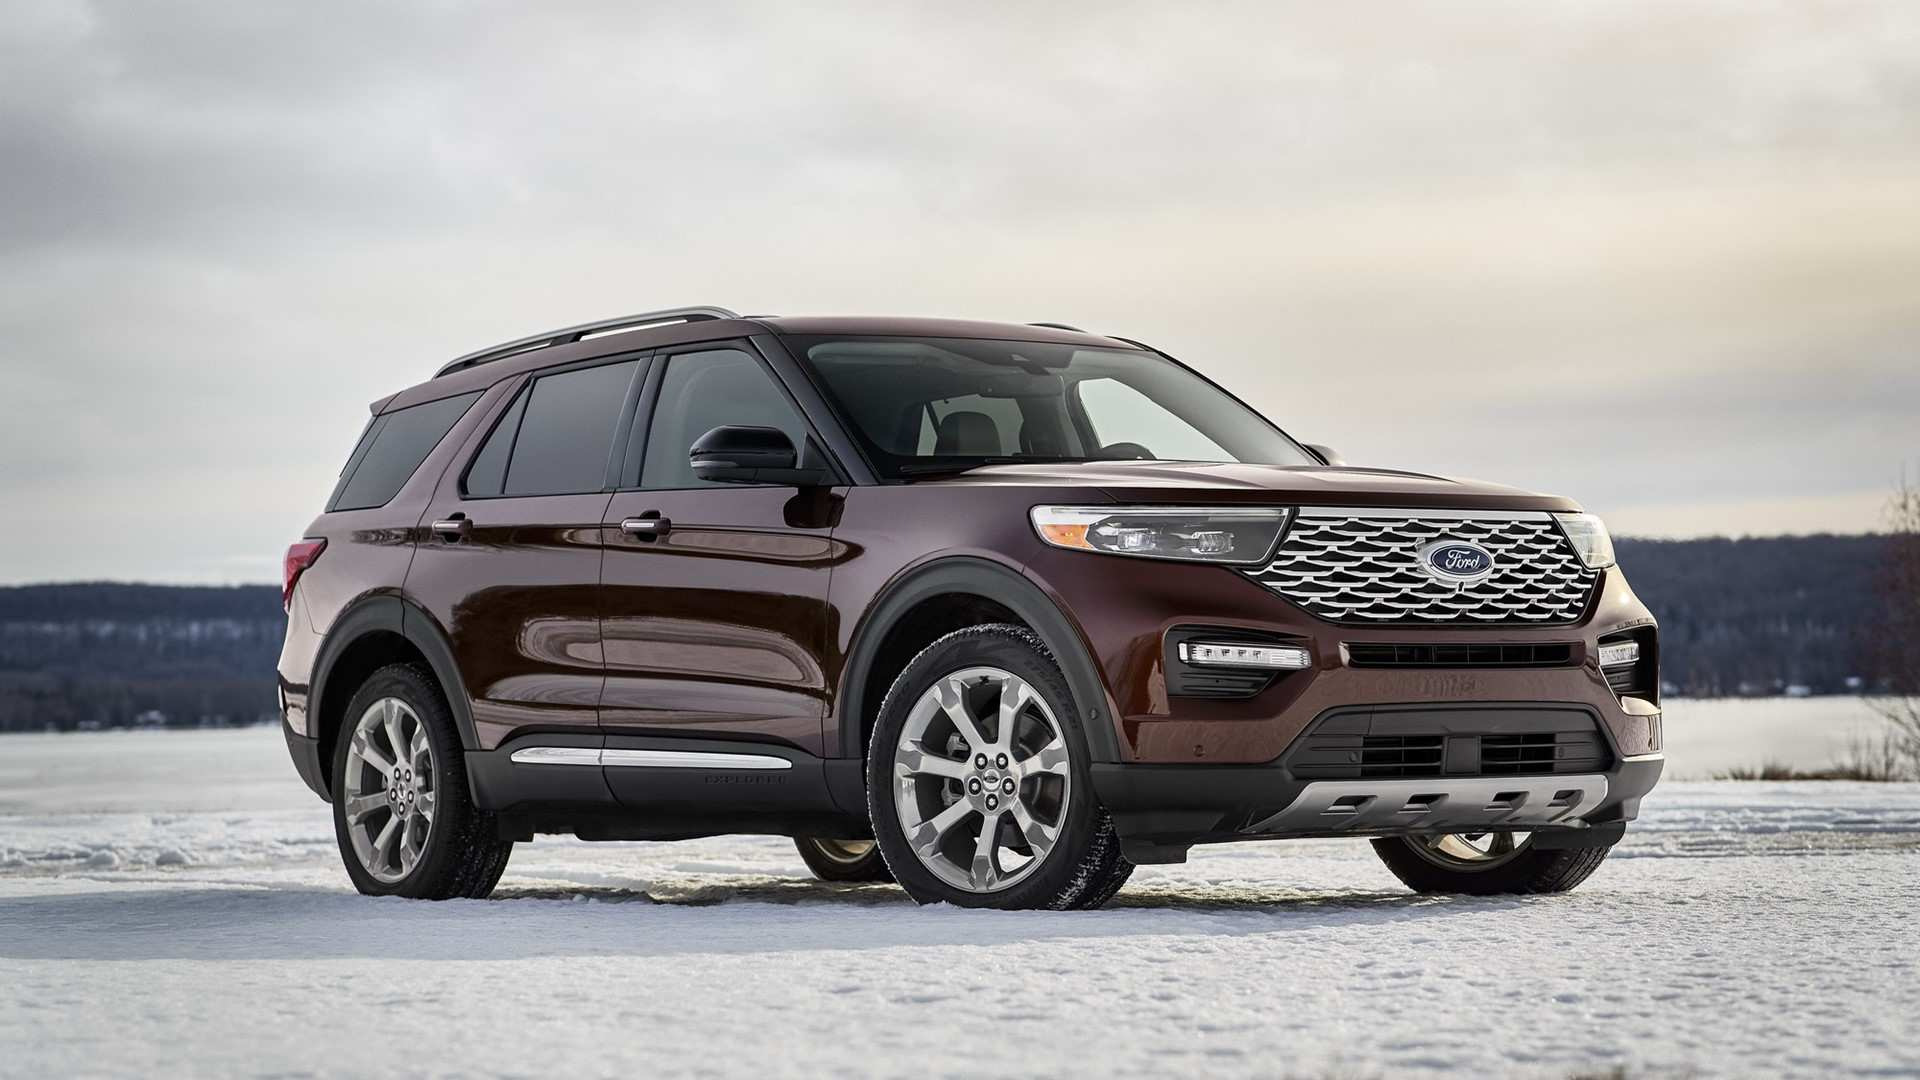 83 Best Review Ford Unveils The New 2020 Explorer Specs by Ford Unveils The New 2020 Explorer